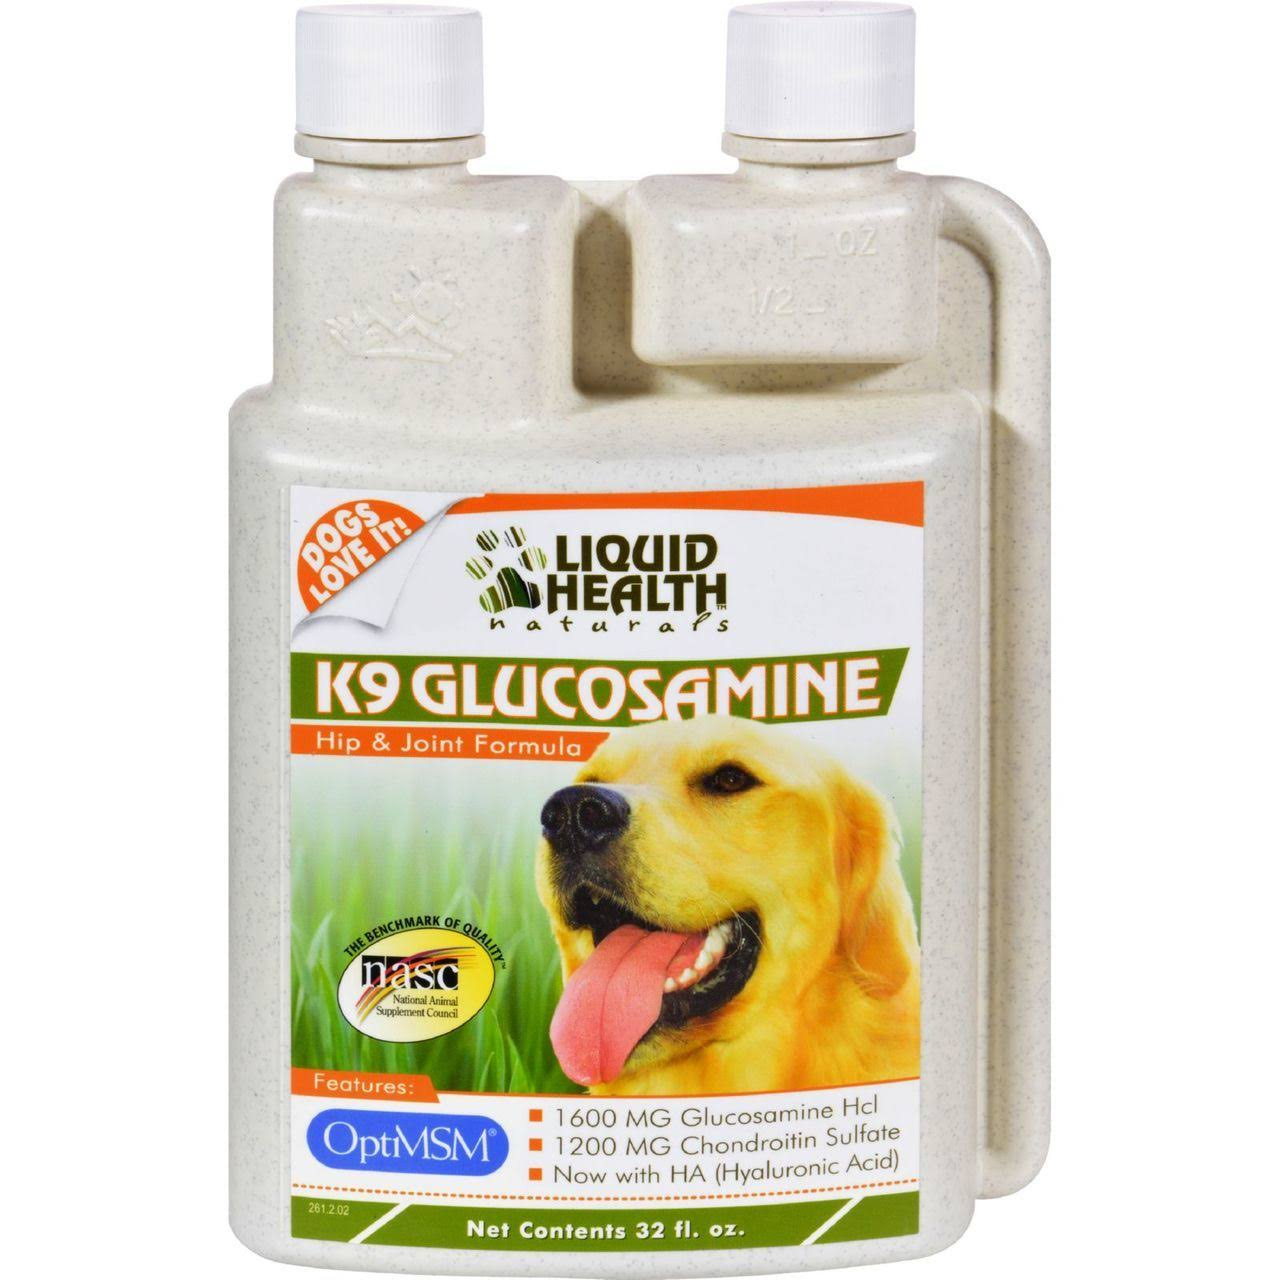 Liquid Health K-9 Glucosamine Hip and Joint Formula